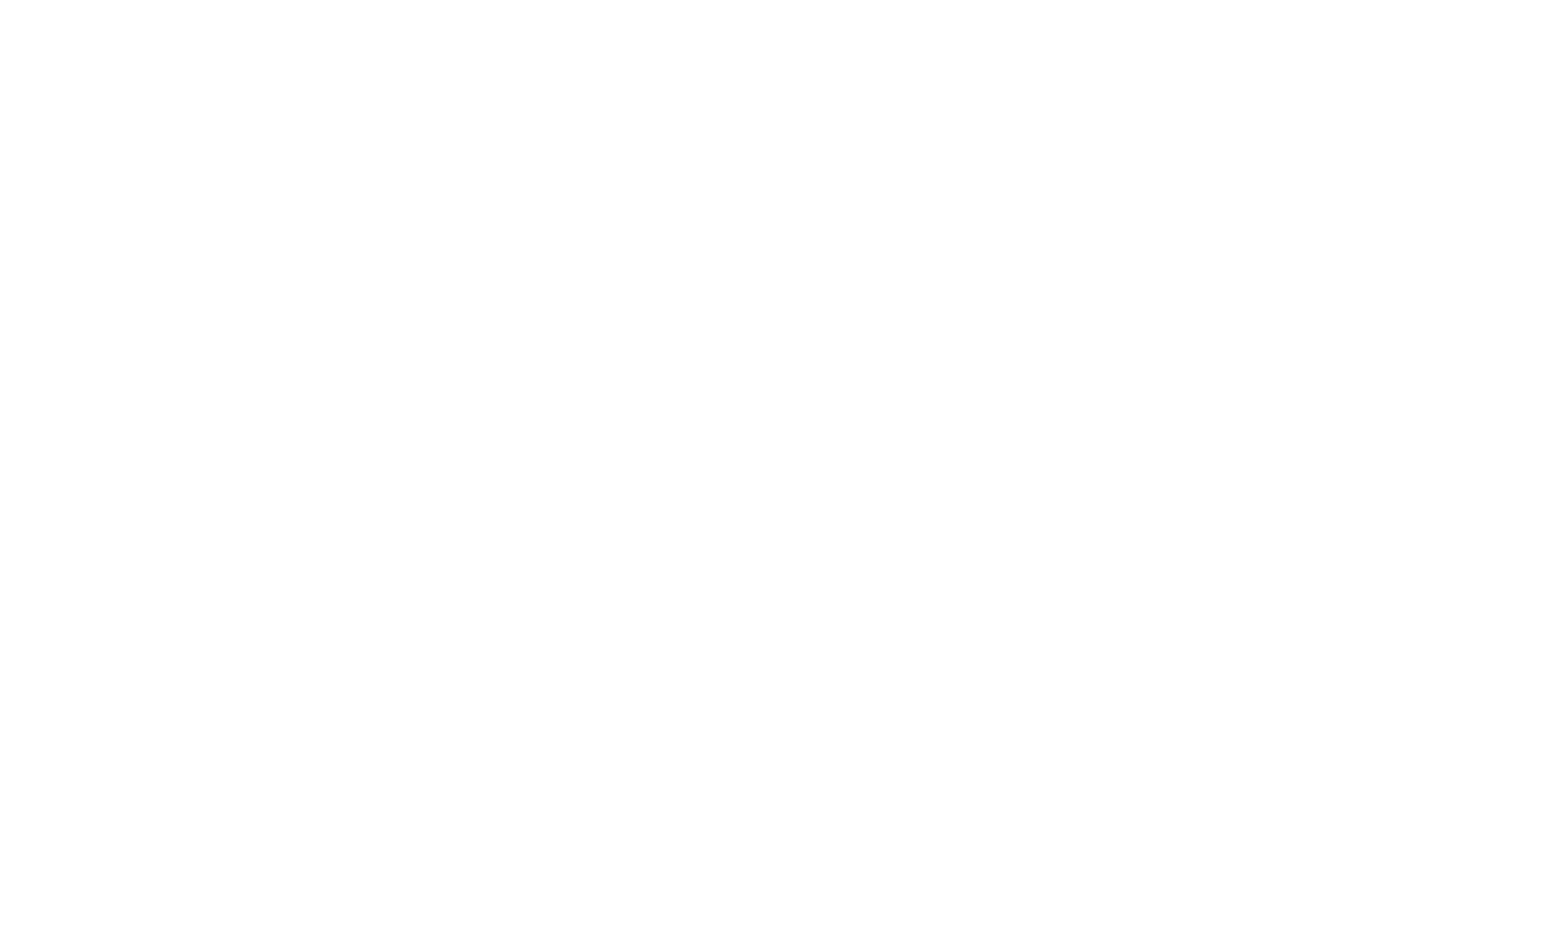 Griff Design's secondary white panda eyes logo design